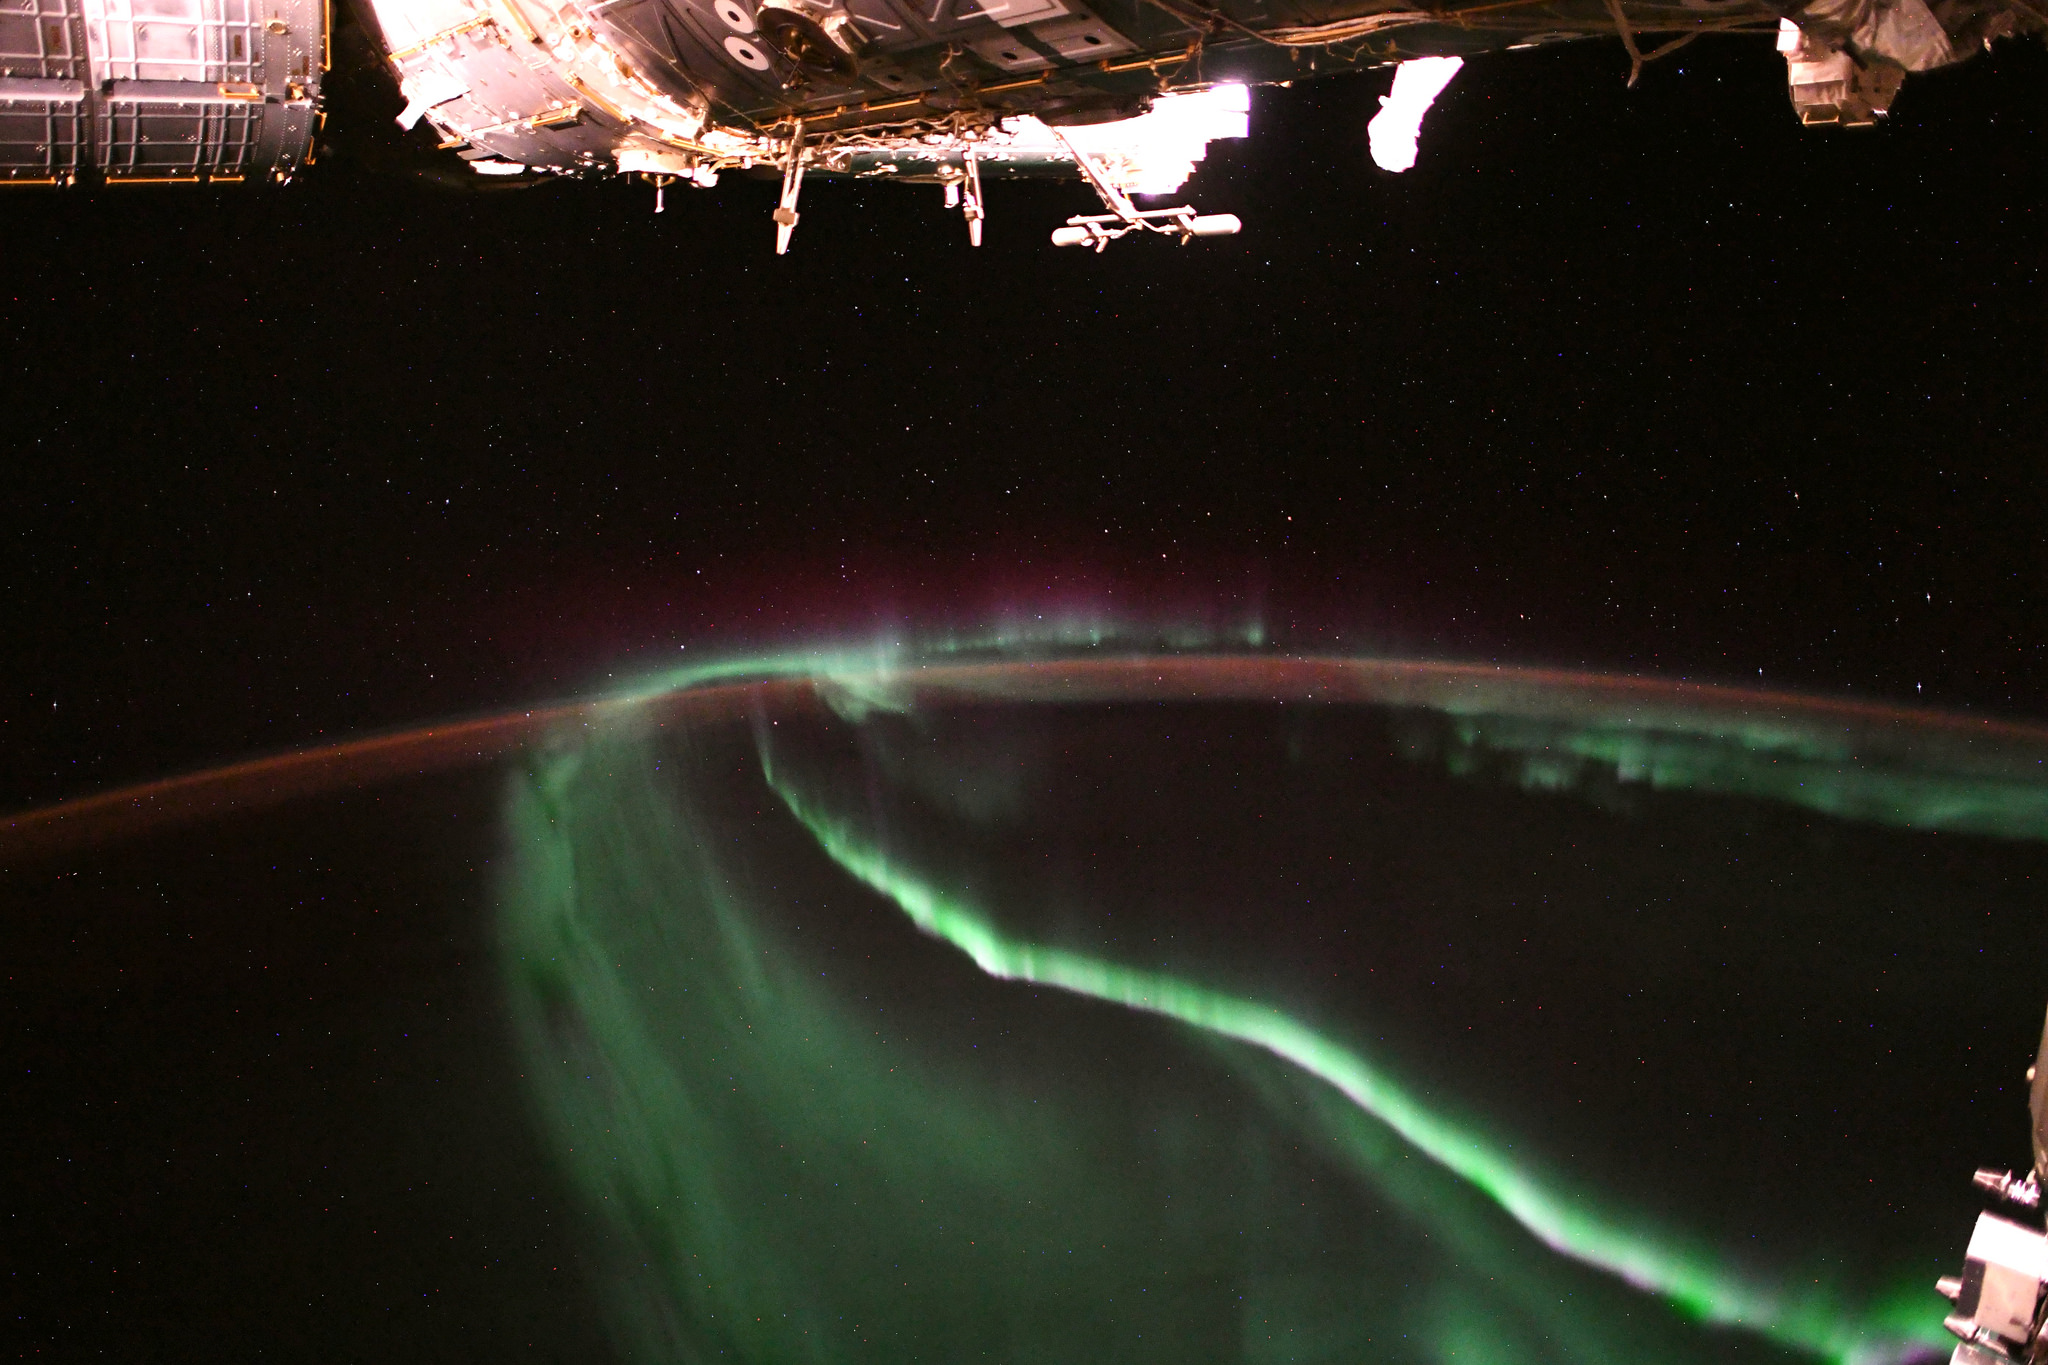 From space picture Aurora